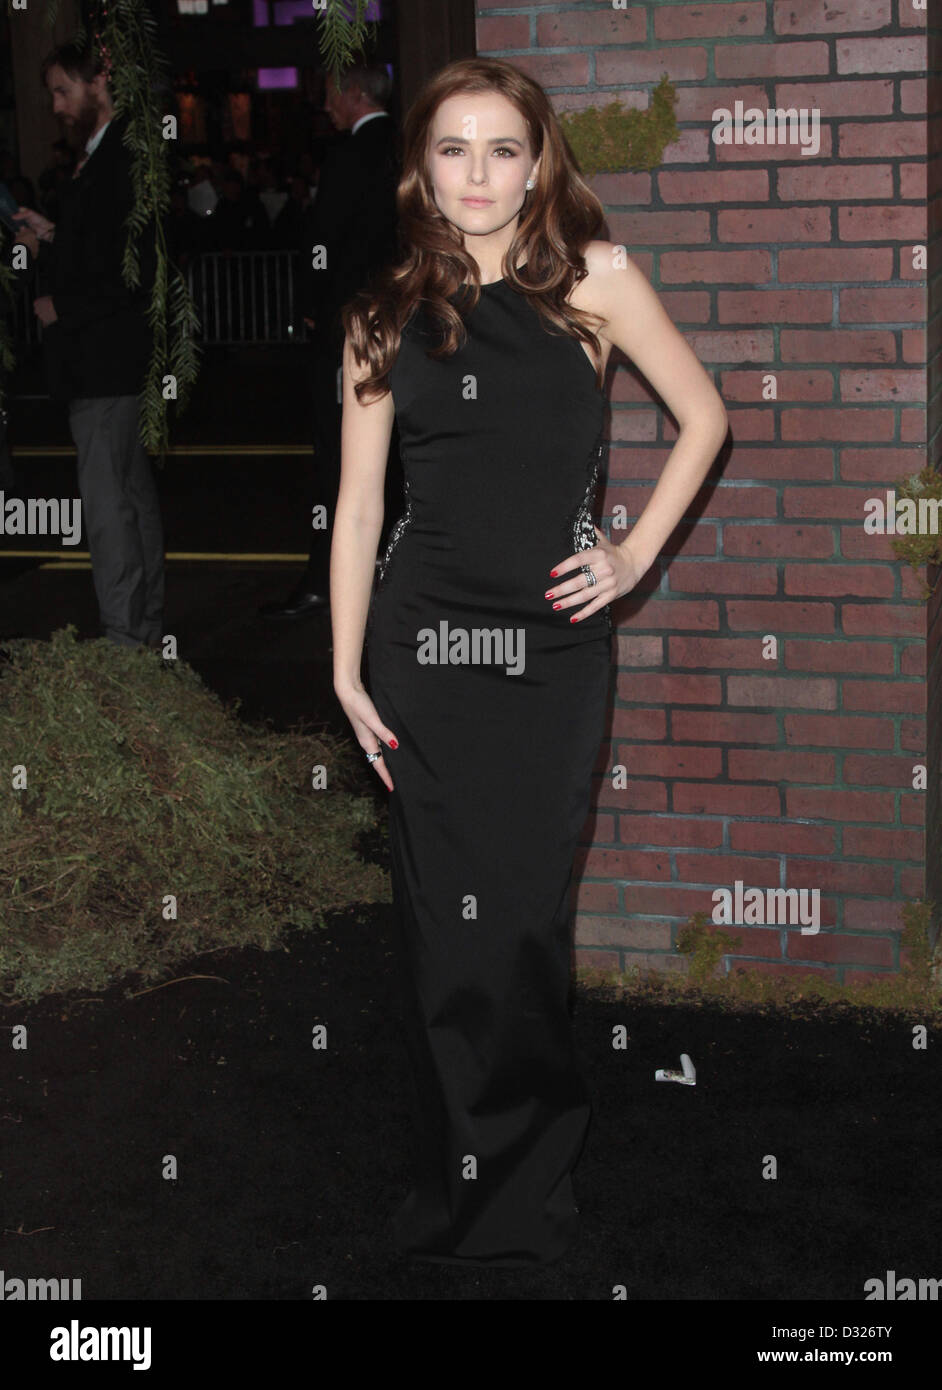 ZOEY DEUTCH BEAUTIFUL CREATURES PREMIERE LOS ANGELES ... Zoey Deutch Beautiful Creatures Premiere